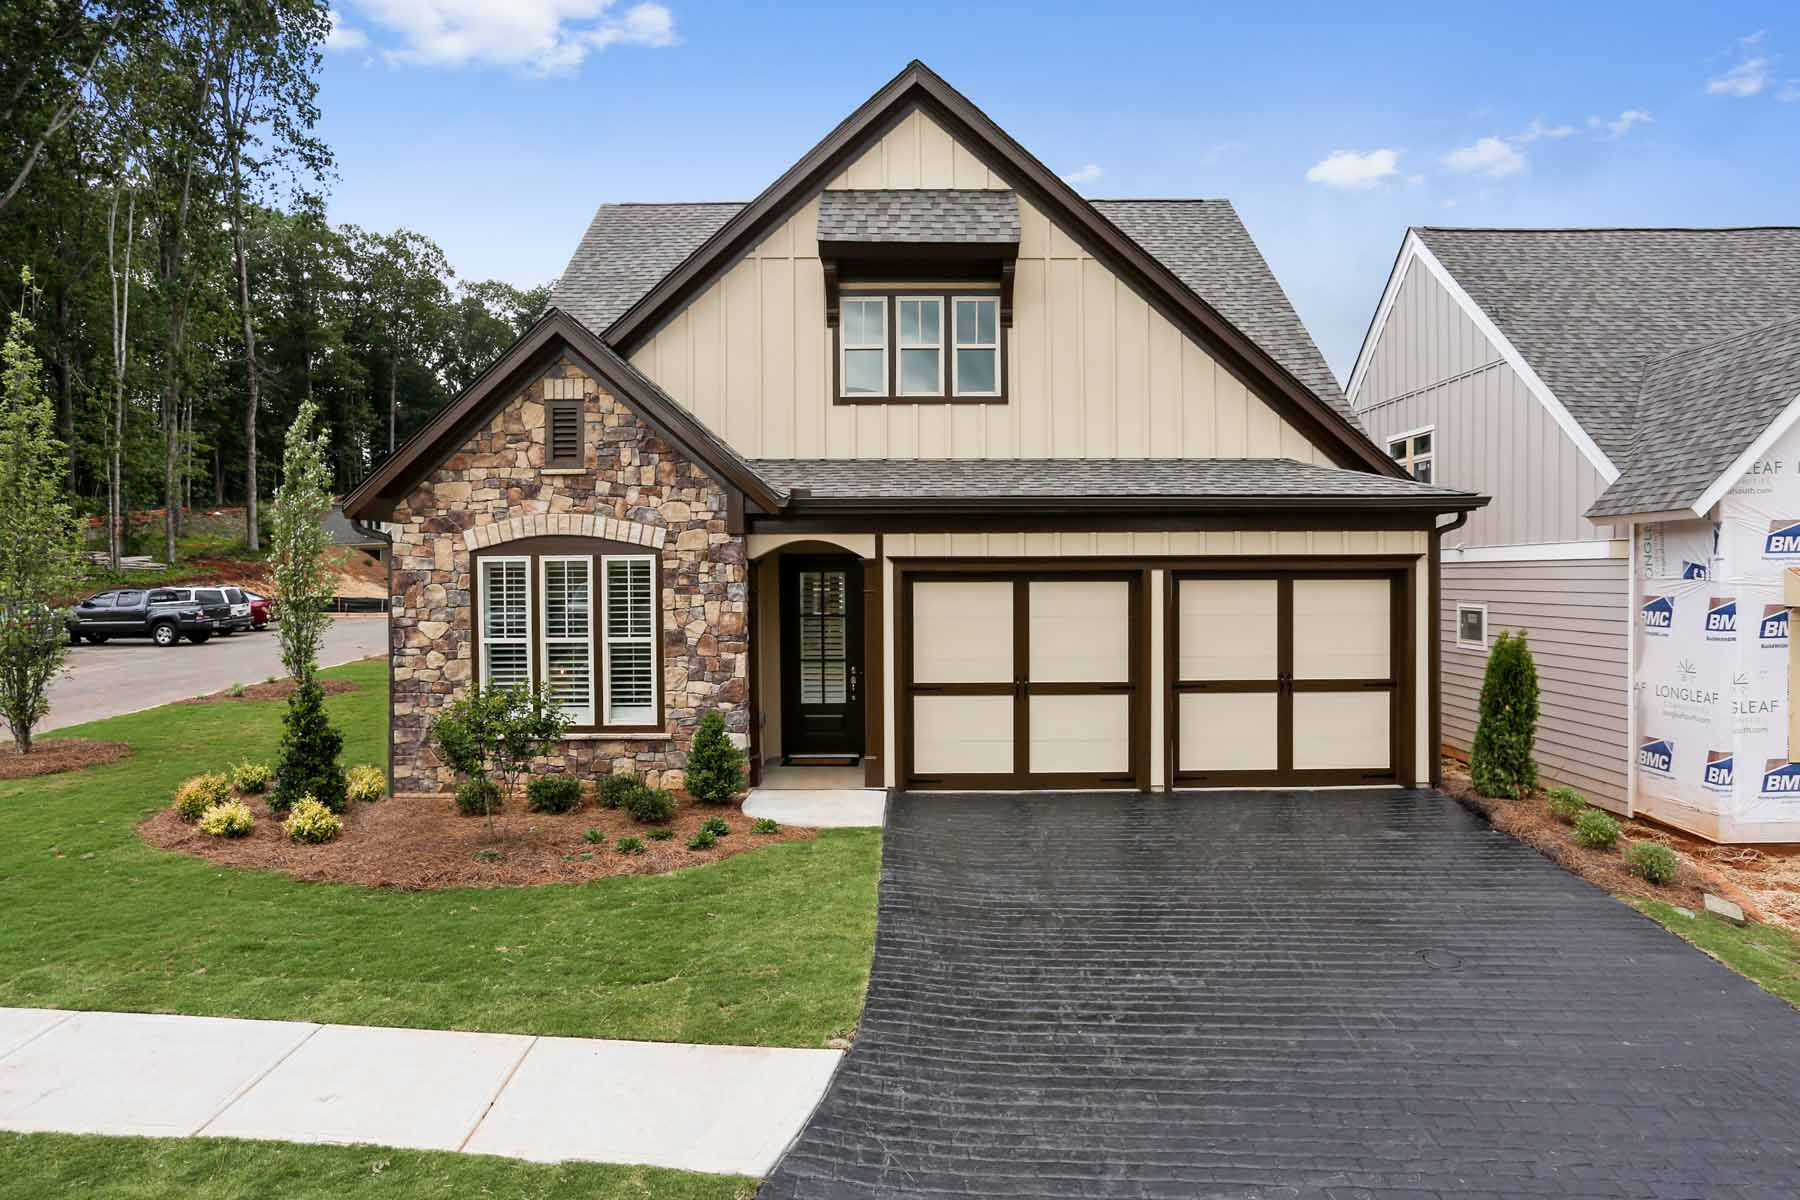 Casa Unifamiliar por un Venta en Open Plan in Gated 55+ Community 378 Hotchkiss Ln, Marietta, Georgia, 30064 Estados Unidos